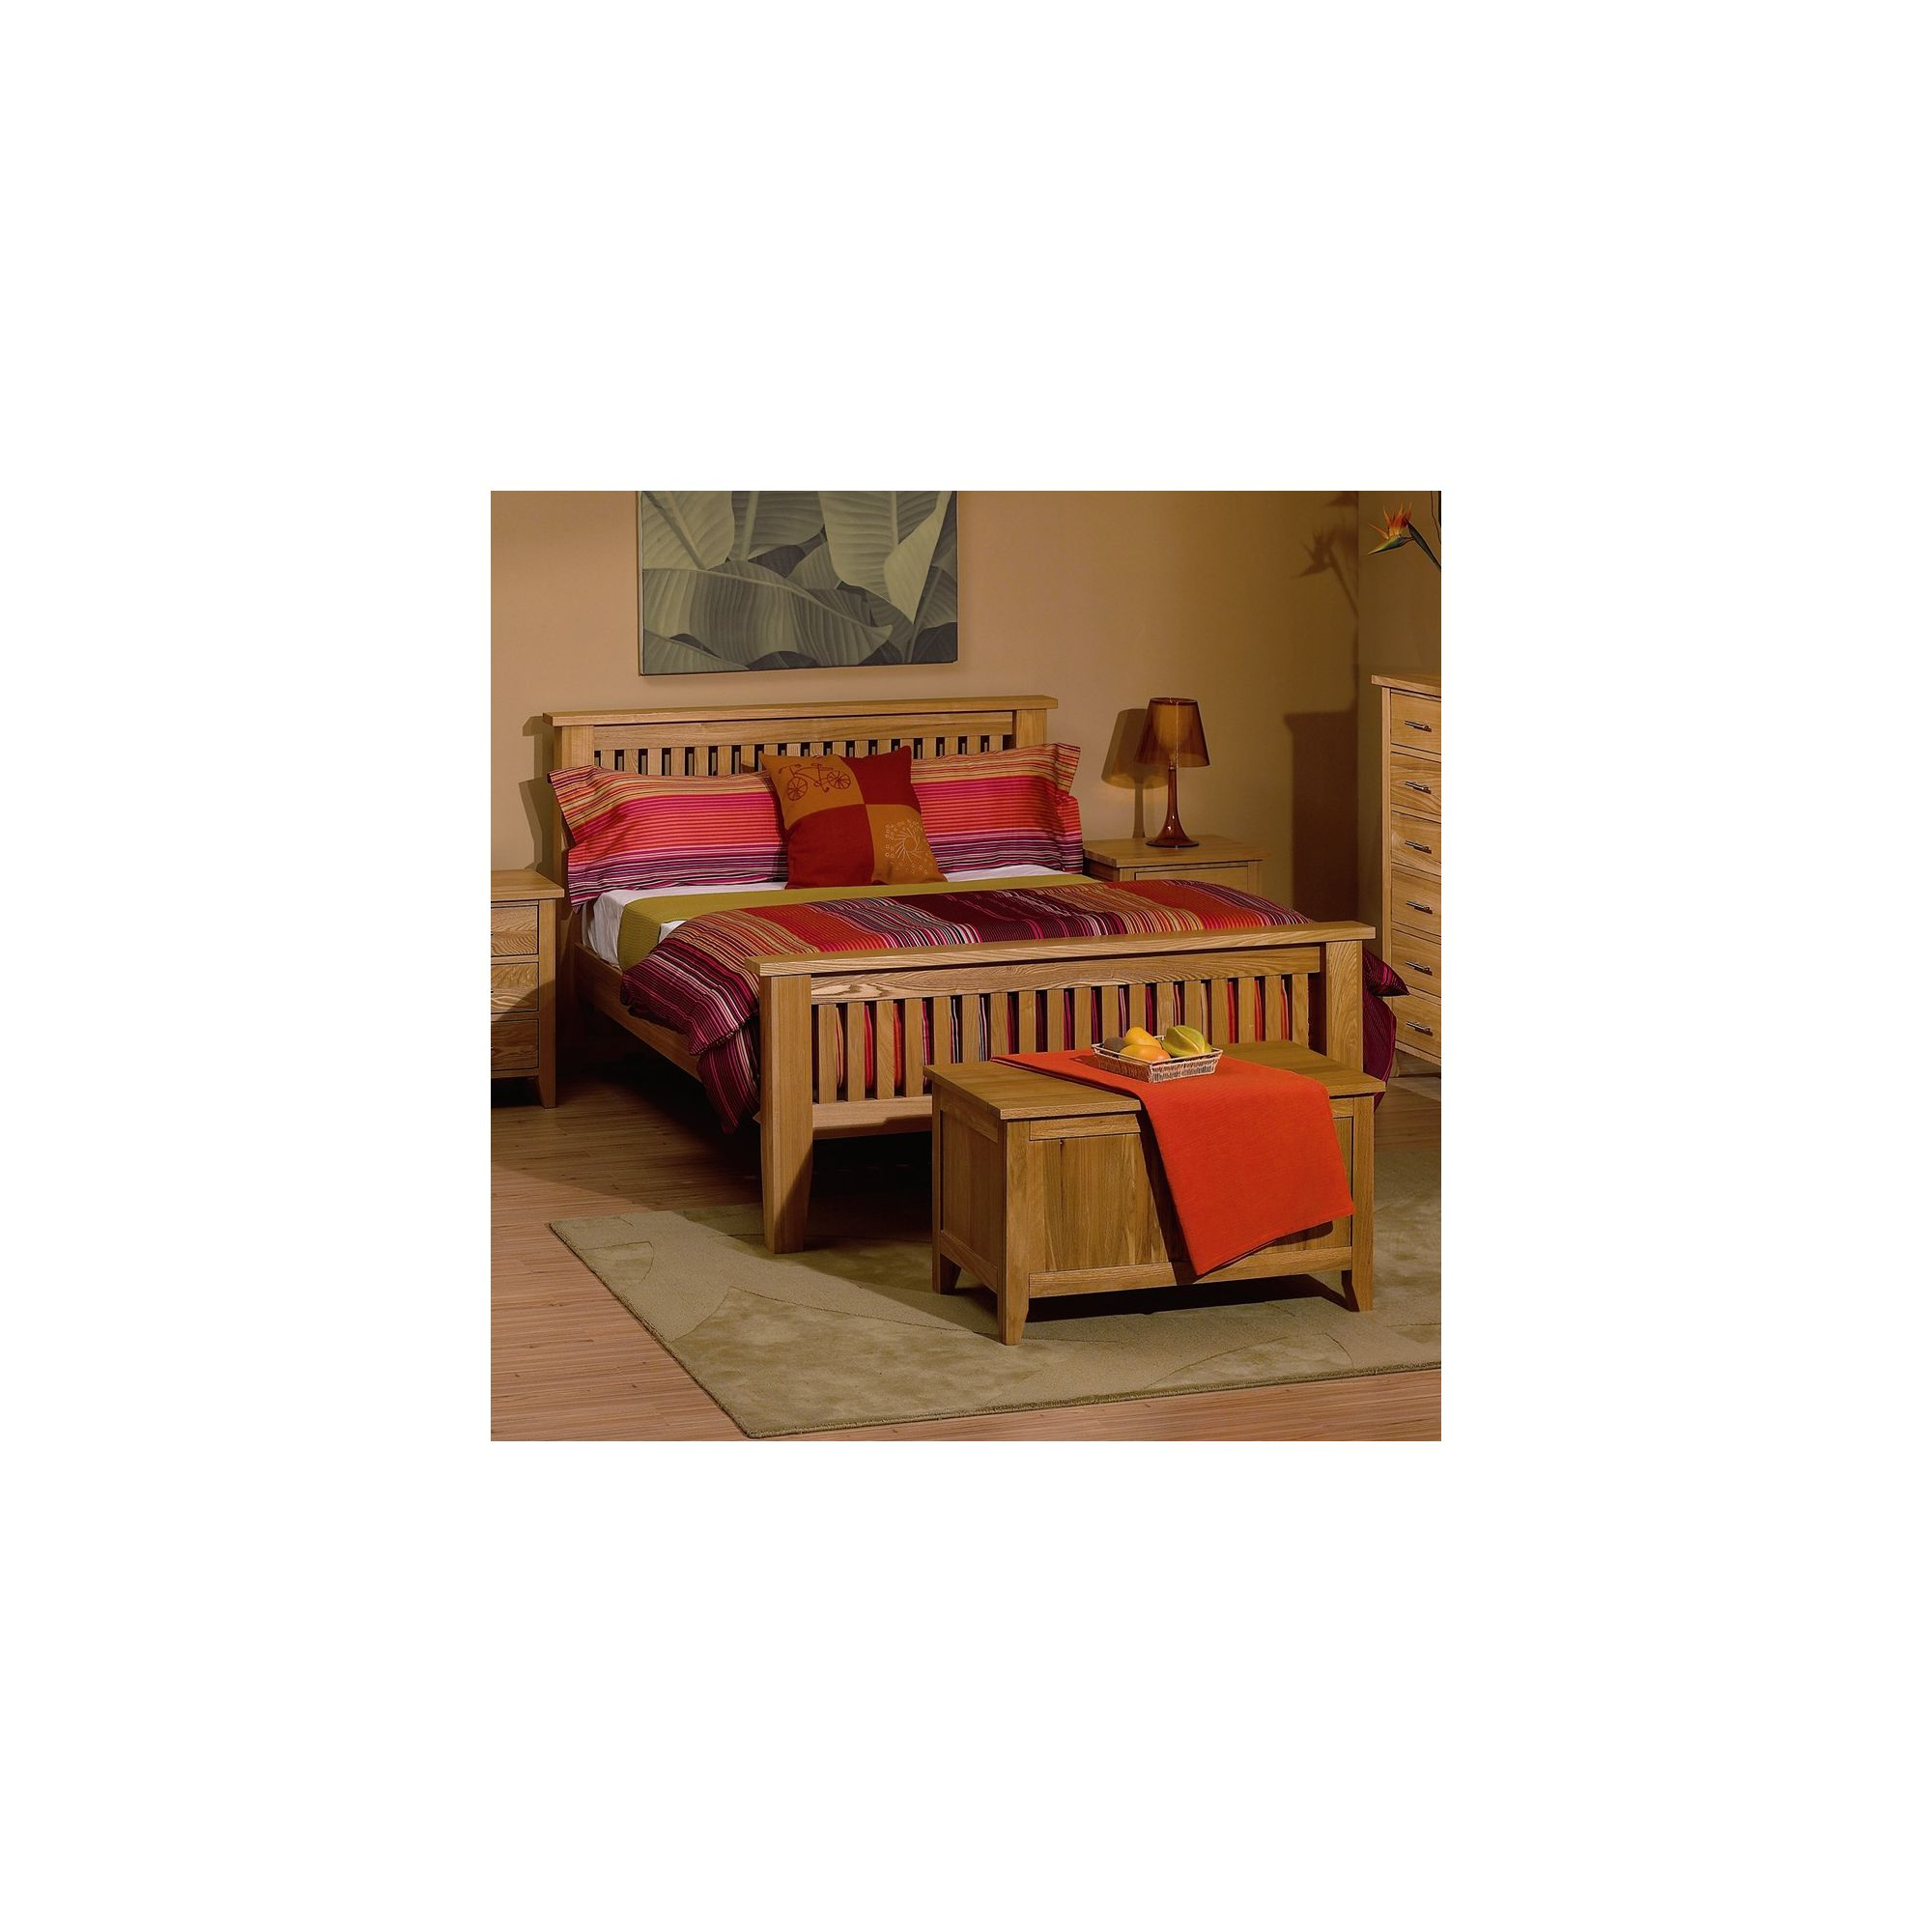 Kelburn Furniture Carlton High Foot End Bed Frame - King at Tesco Direct